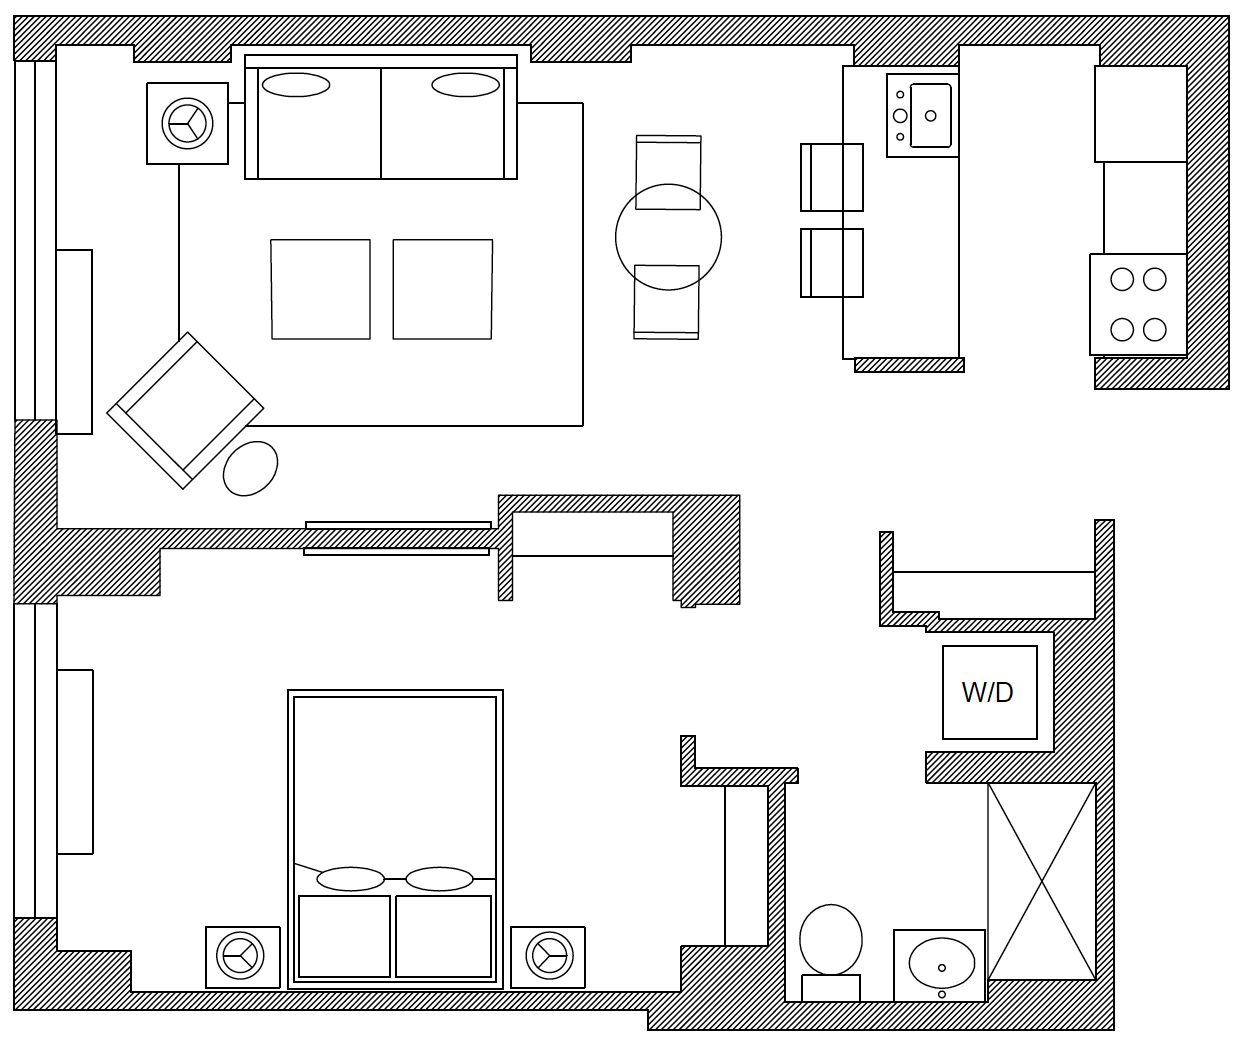 Floor plan of Apartment at the Tate, Manhattan, New York